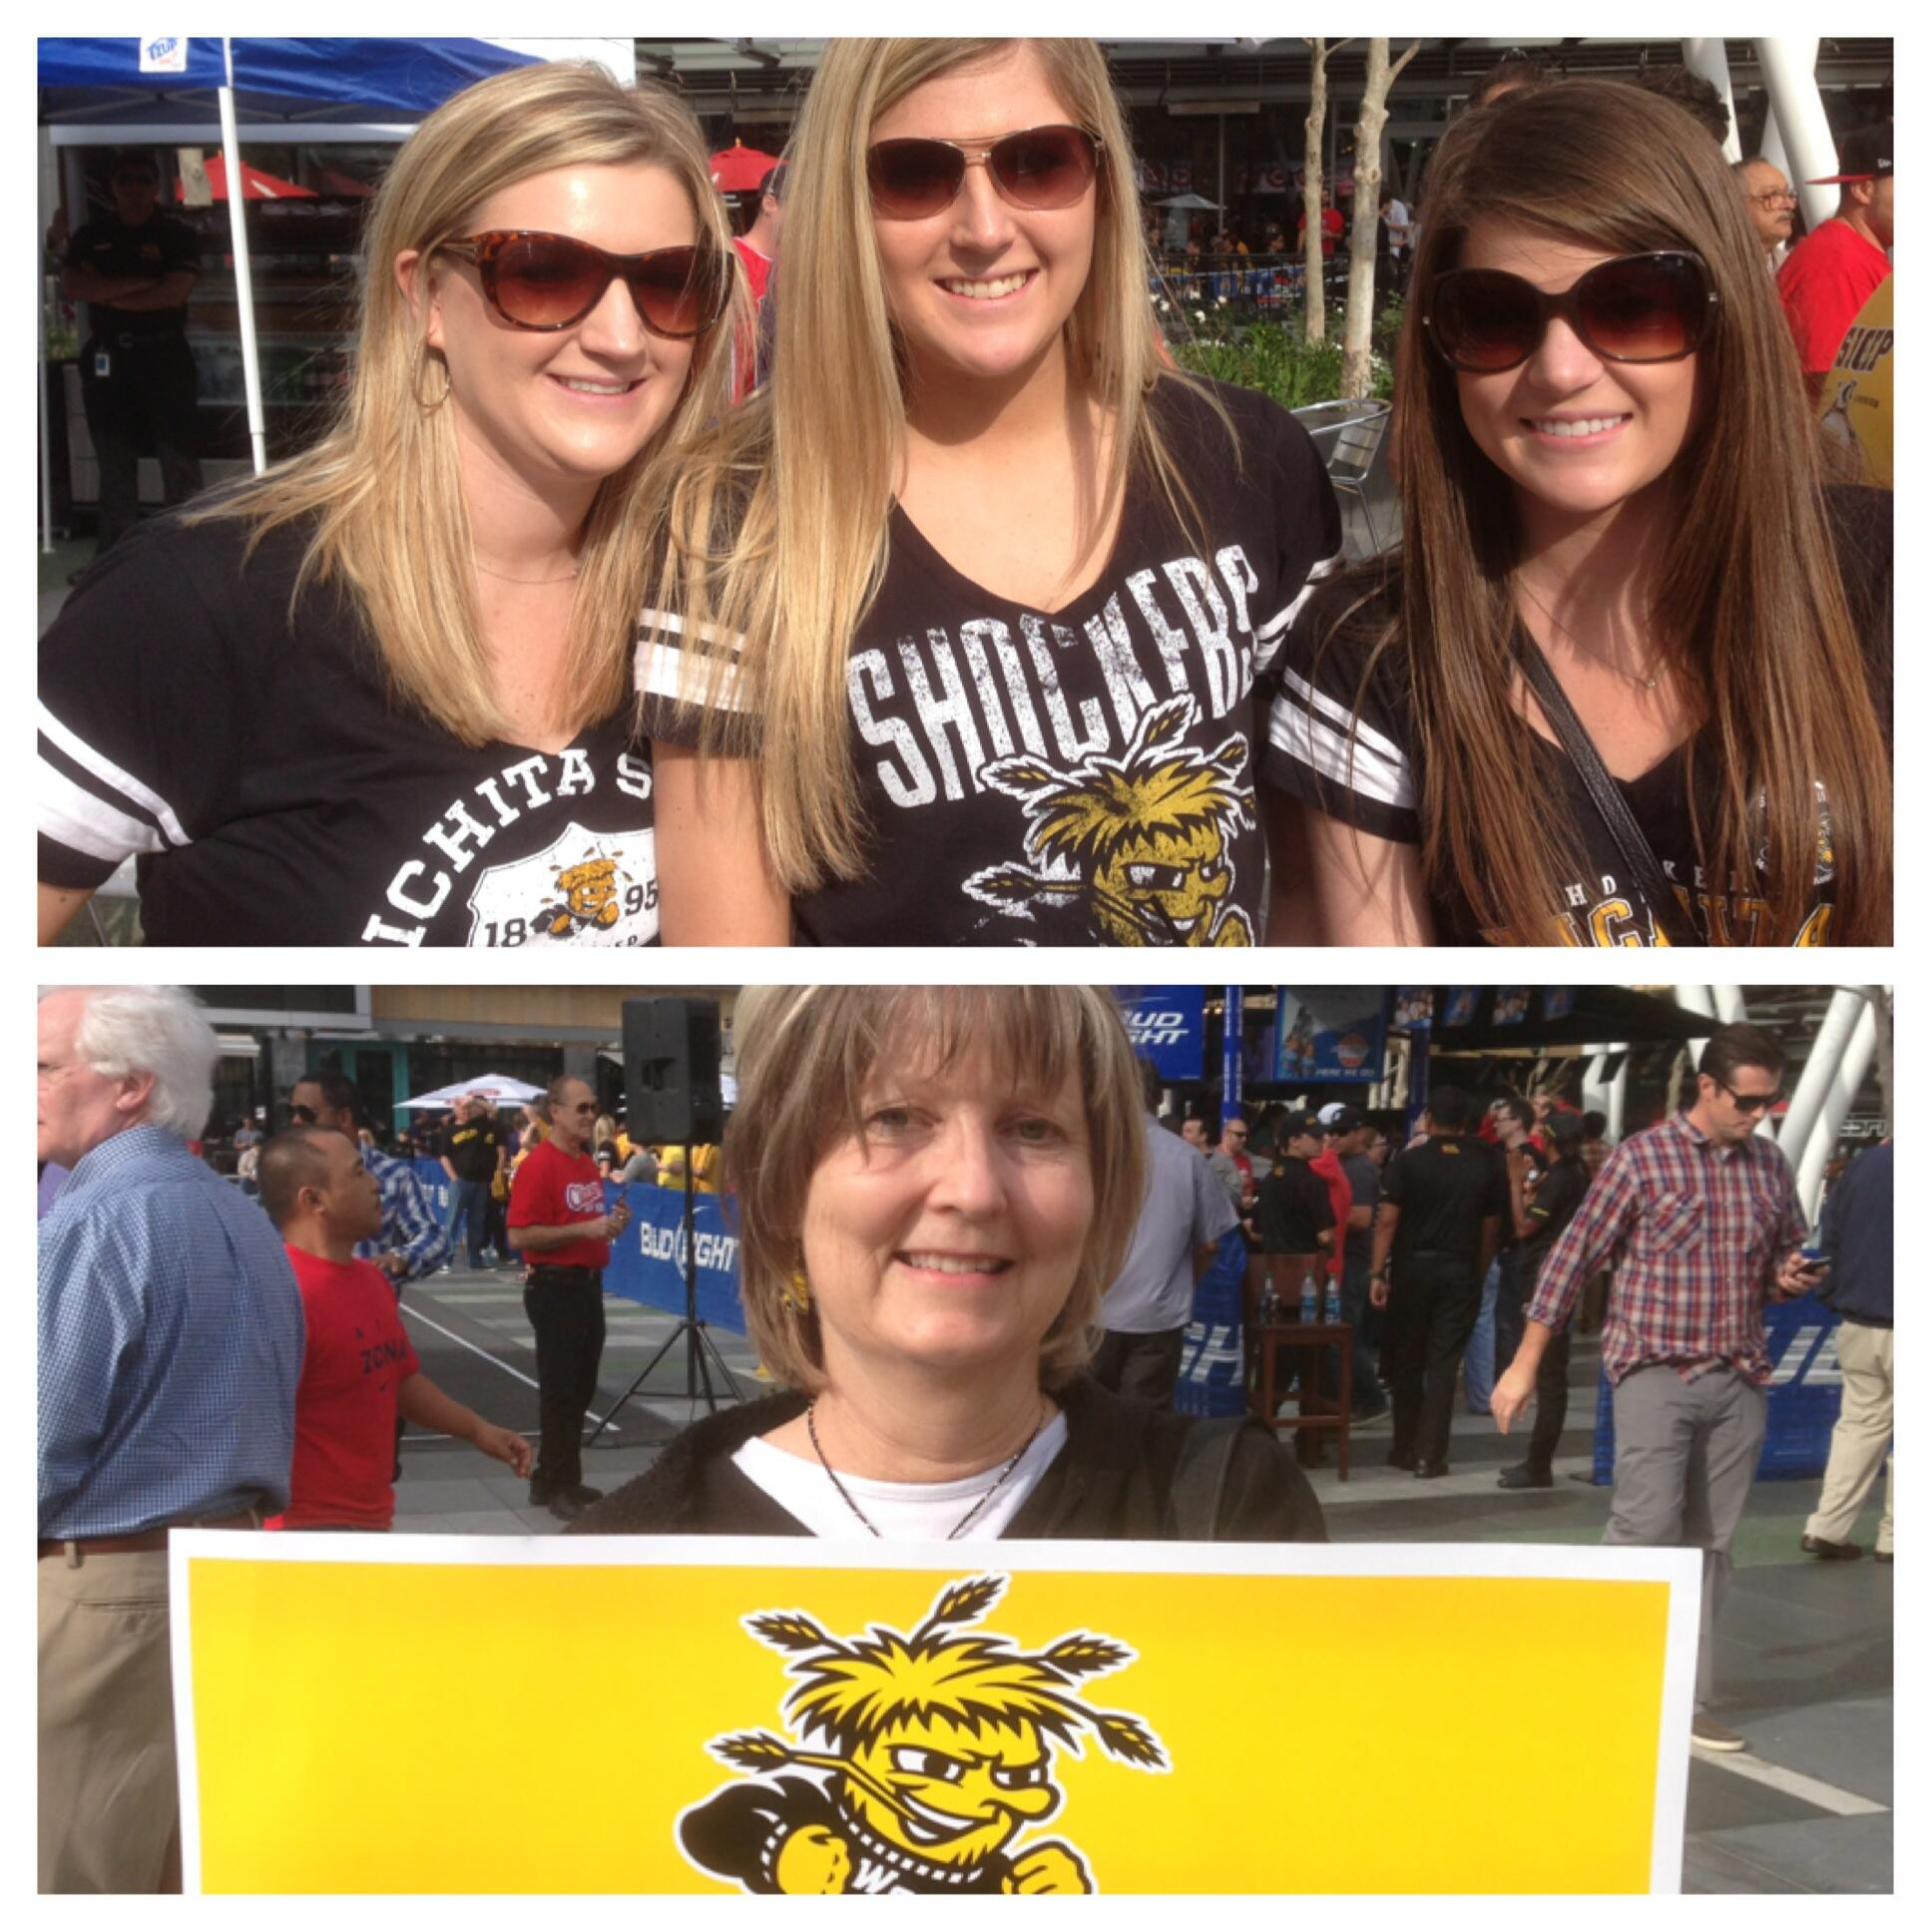 Twitter / deniseneil: Shockers fans collage No. 3 ...